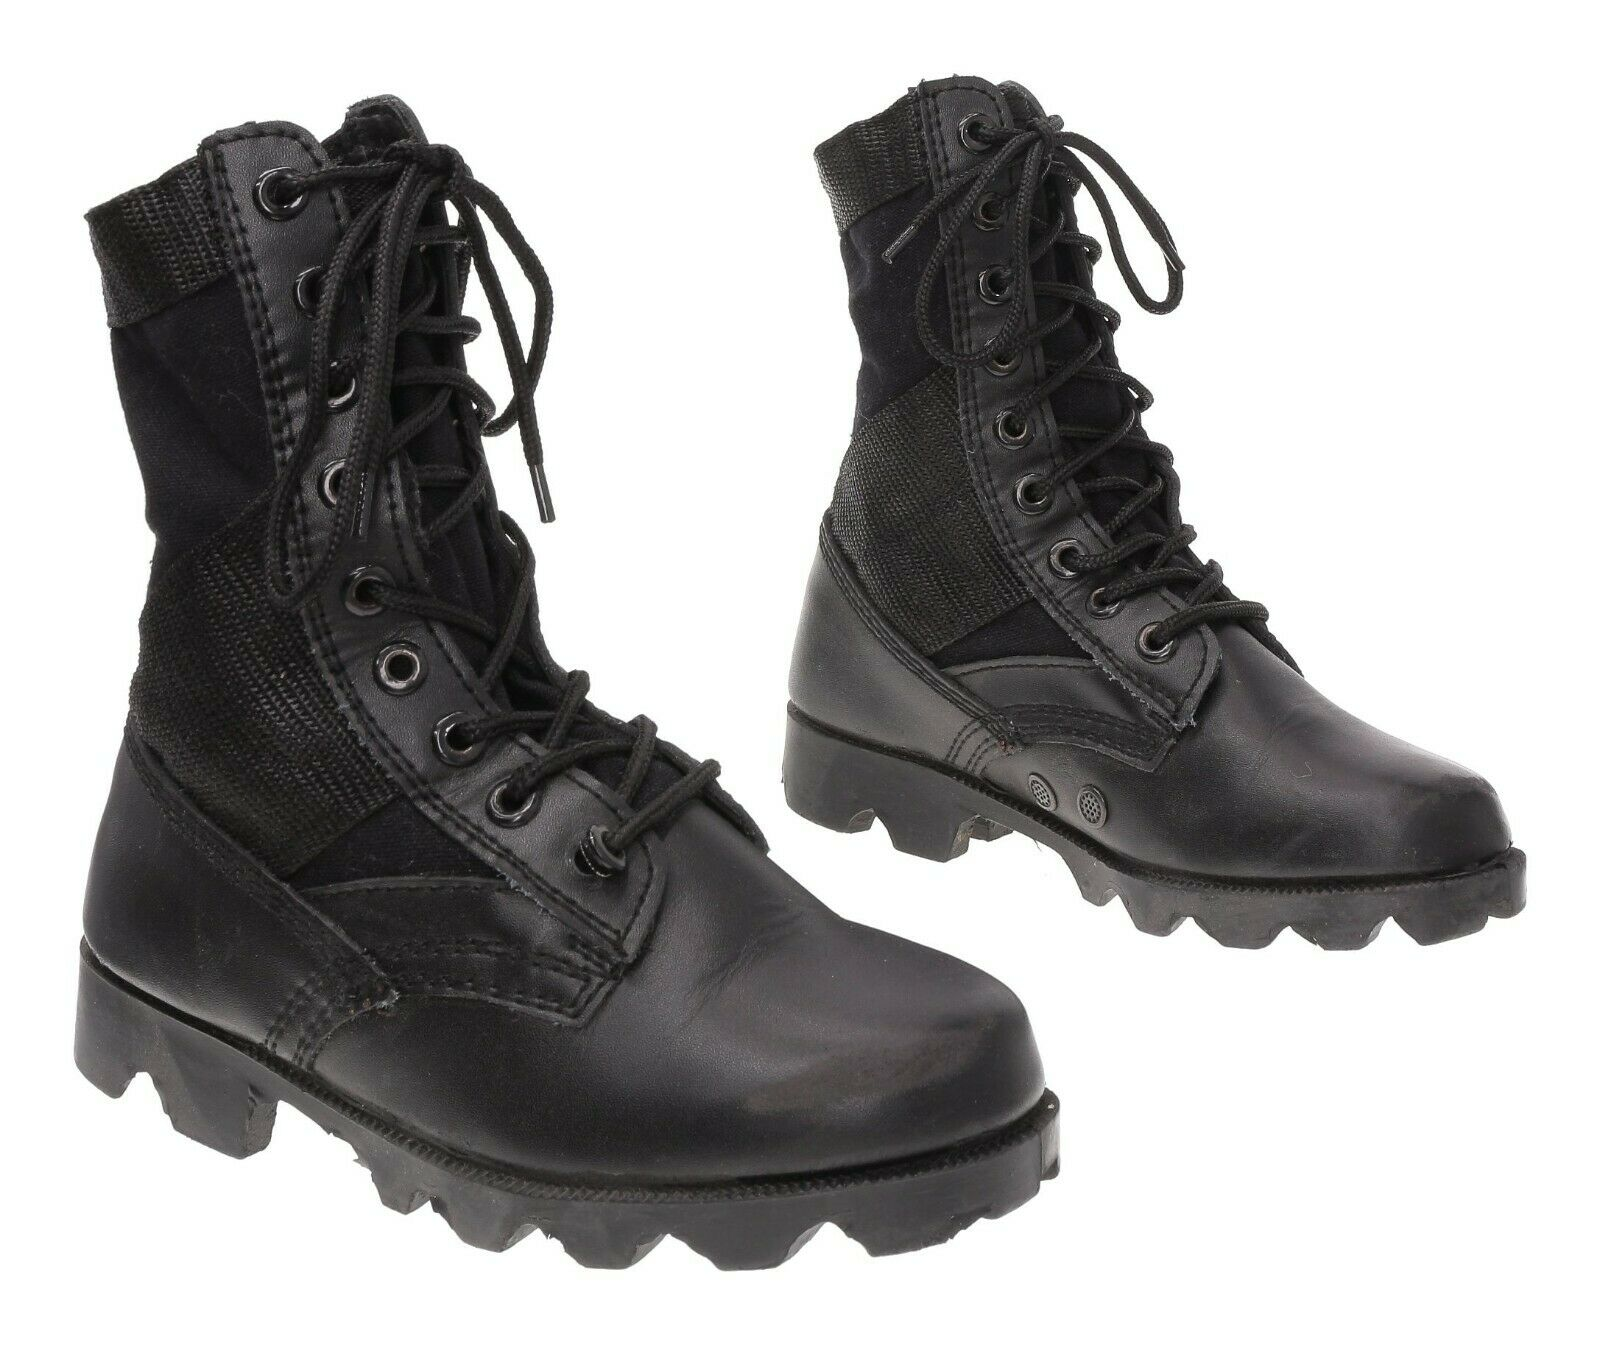 Vtg COMBAT Boots 1 R Youth Black Army Tropical Hot Weather Leather Jungle Boots